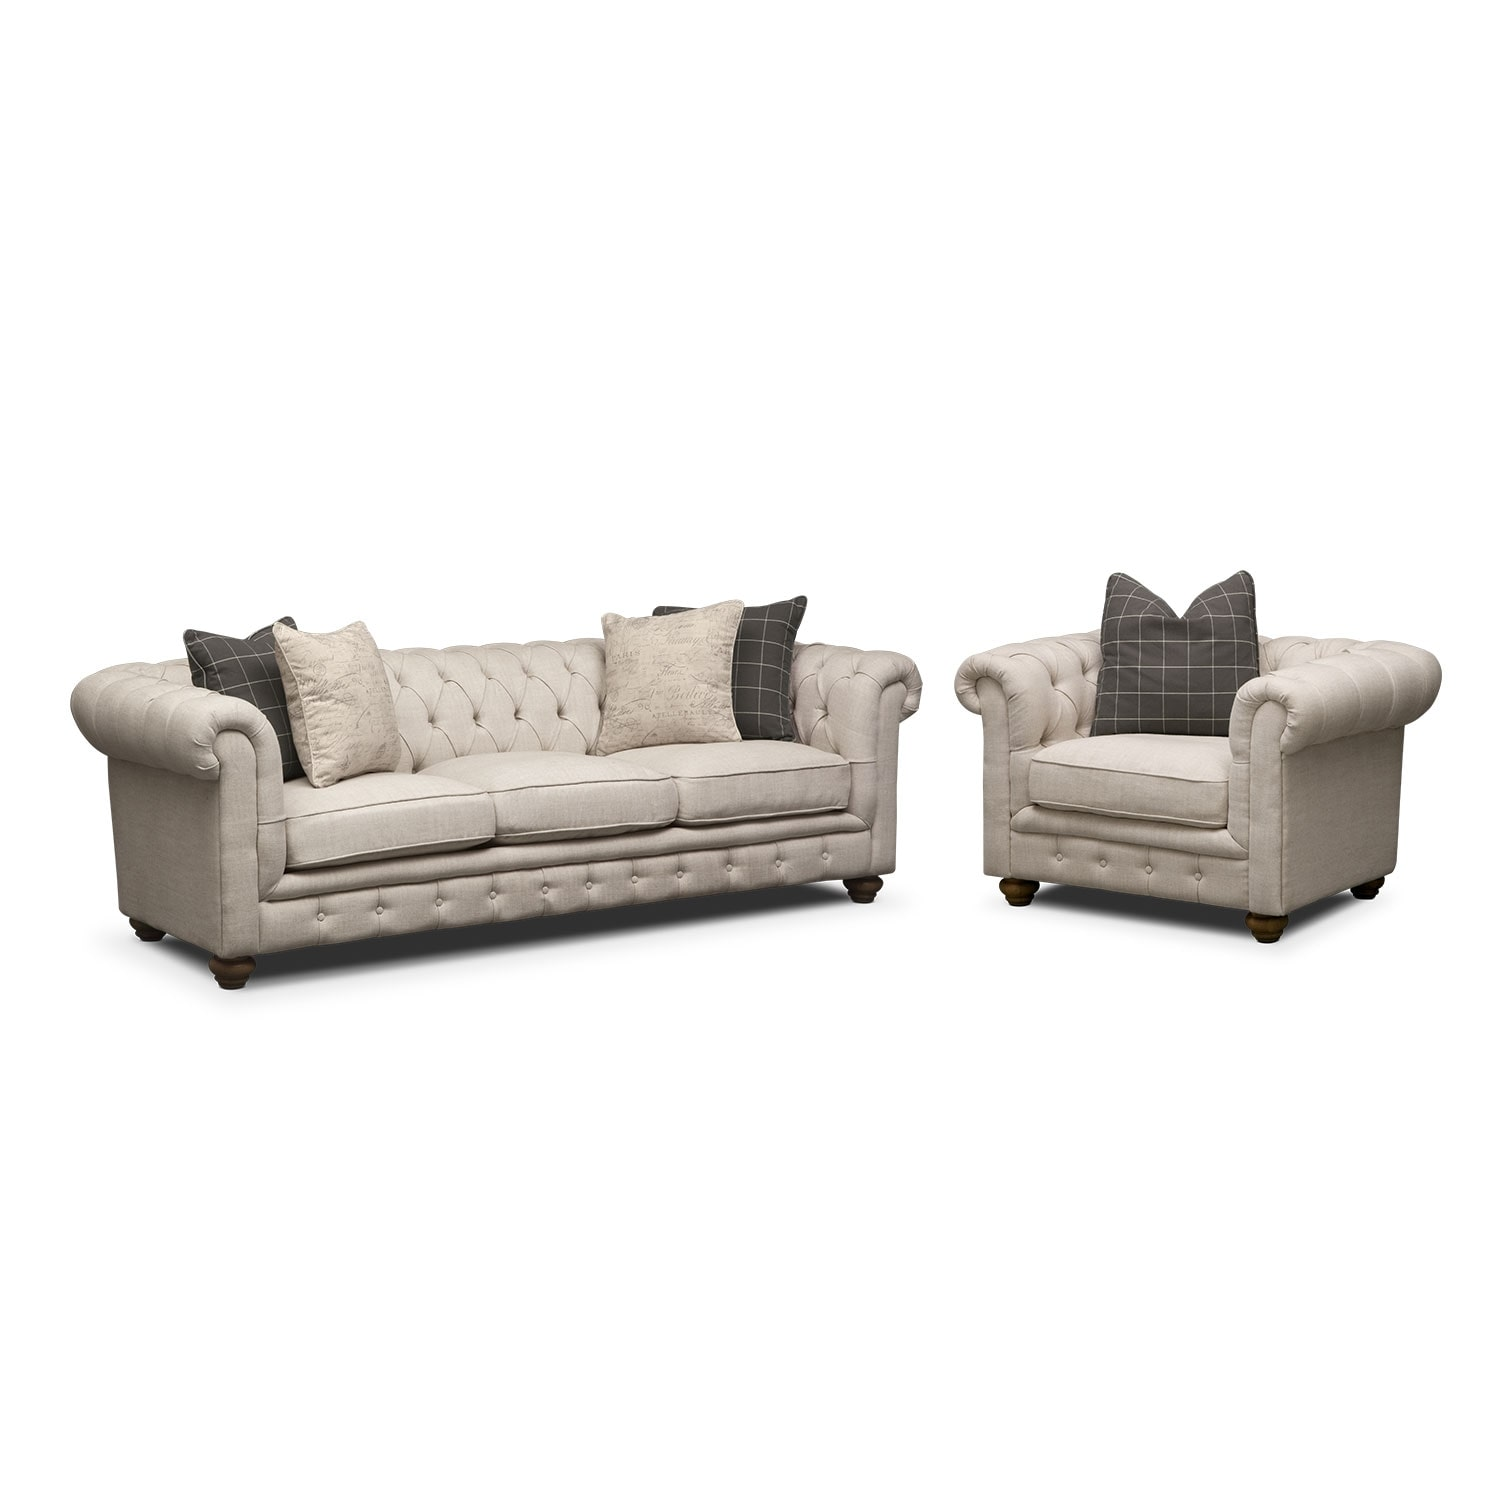 Living Room Furniture - Madeline Sofa and Chair Set - Beige